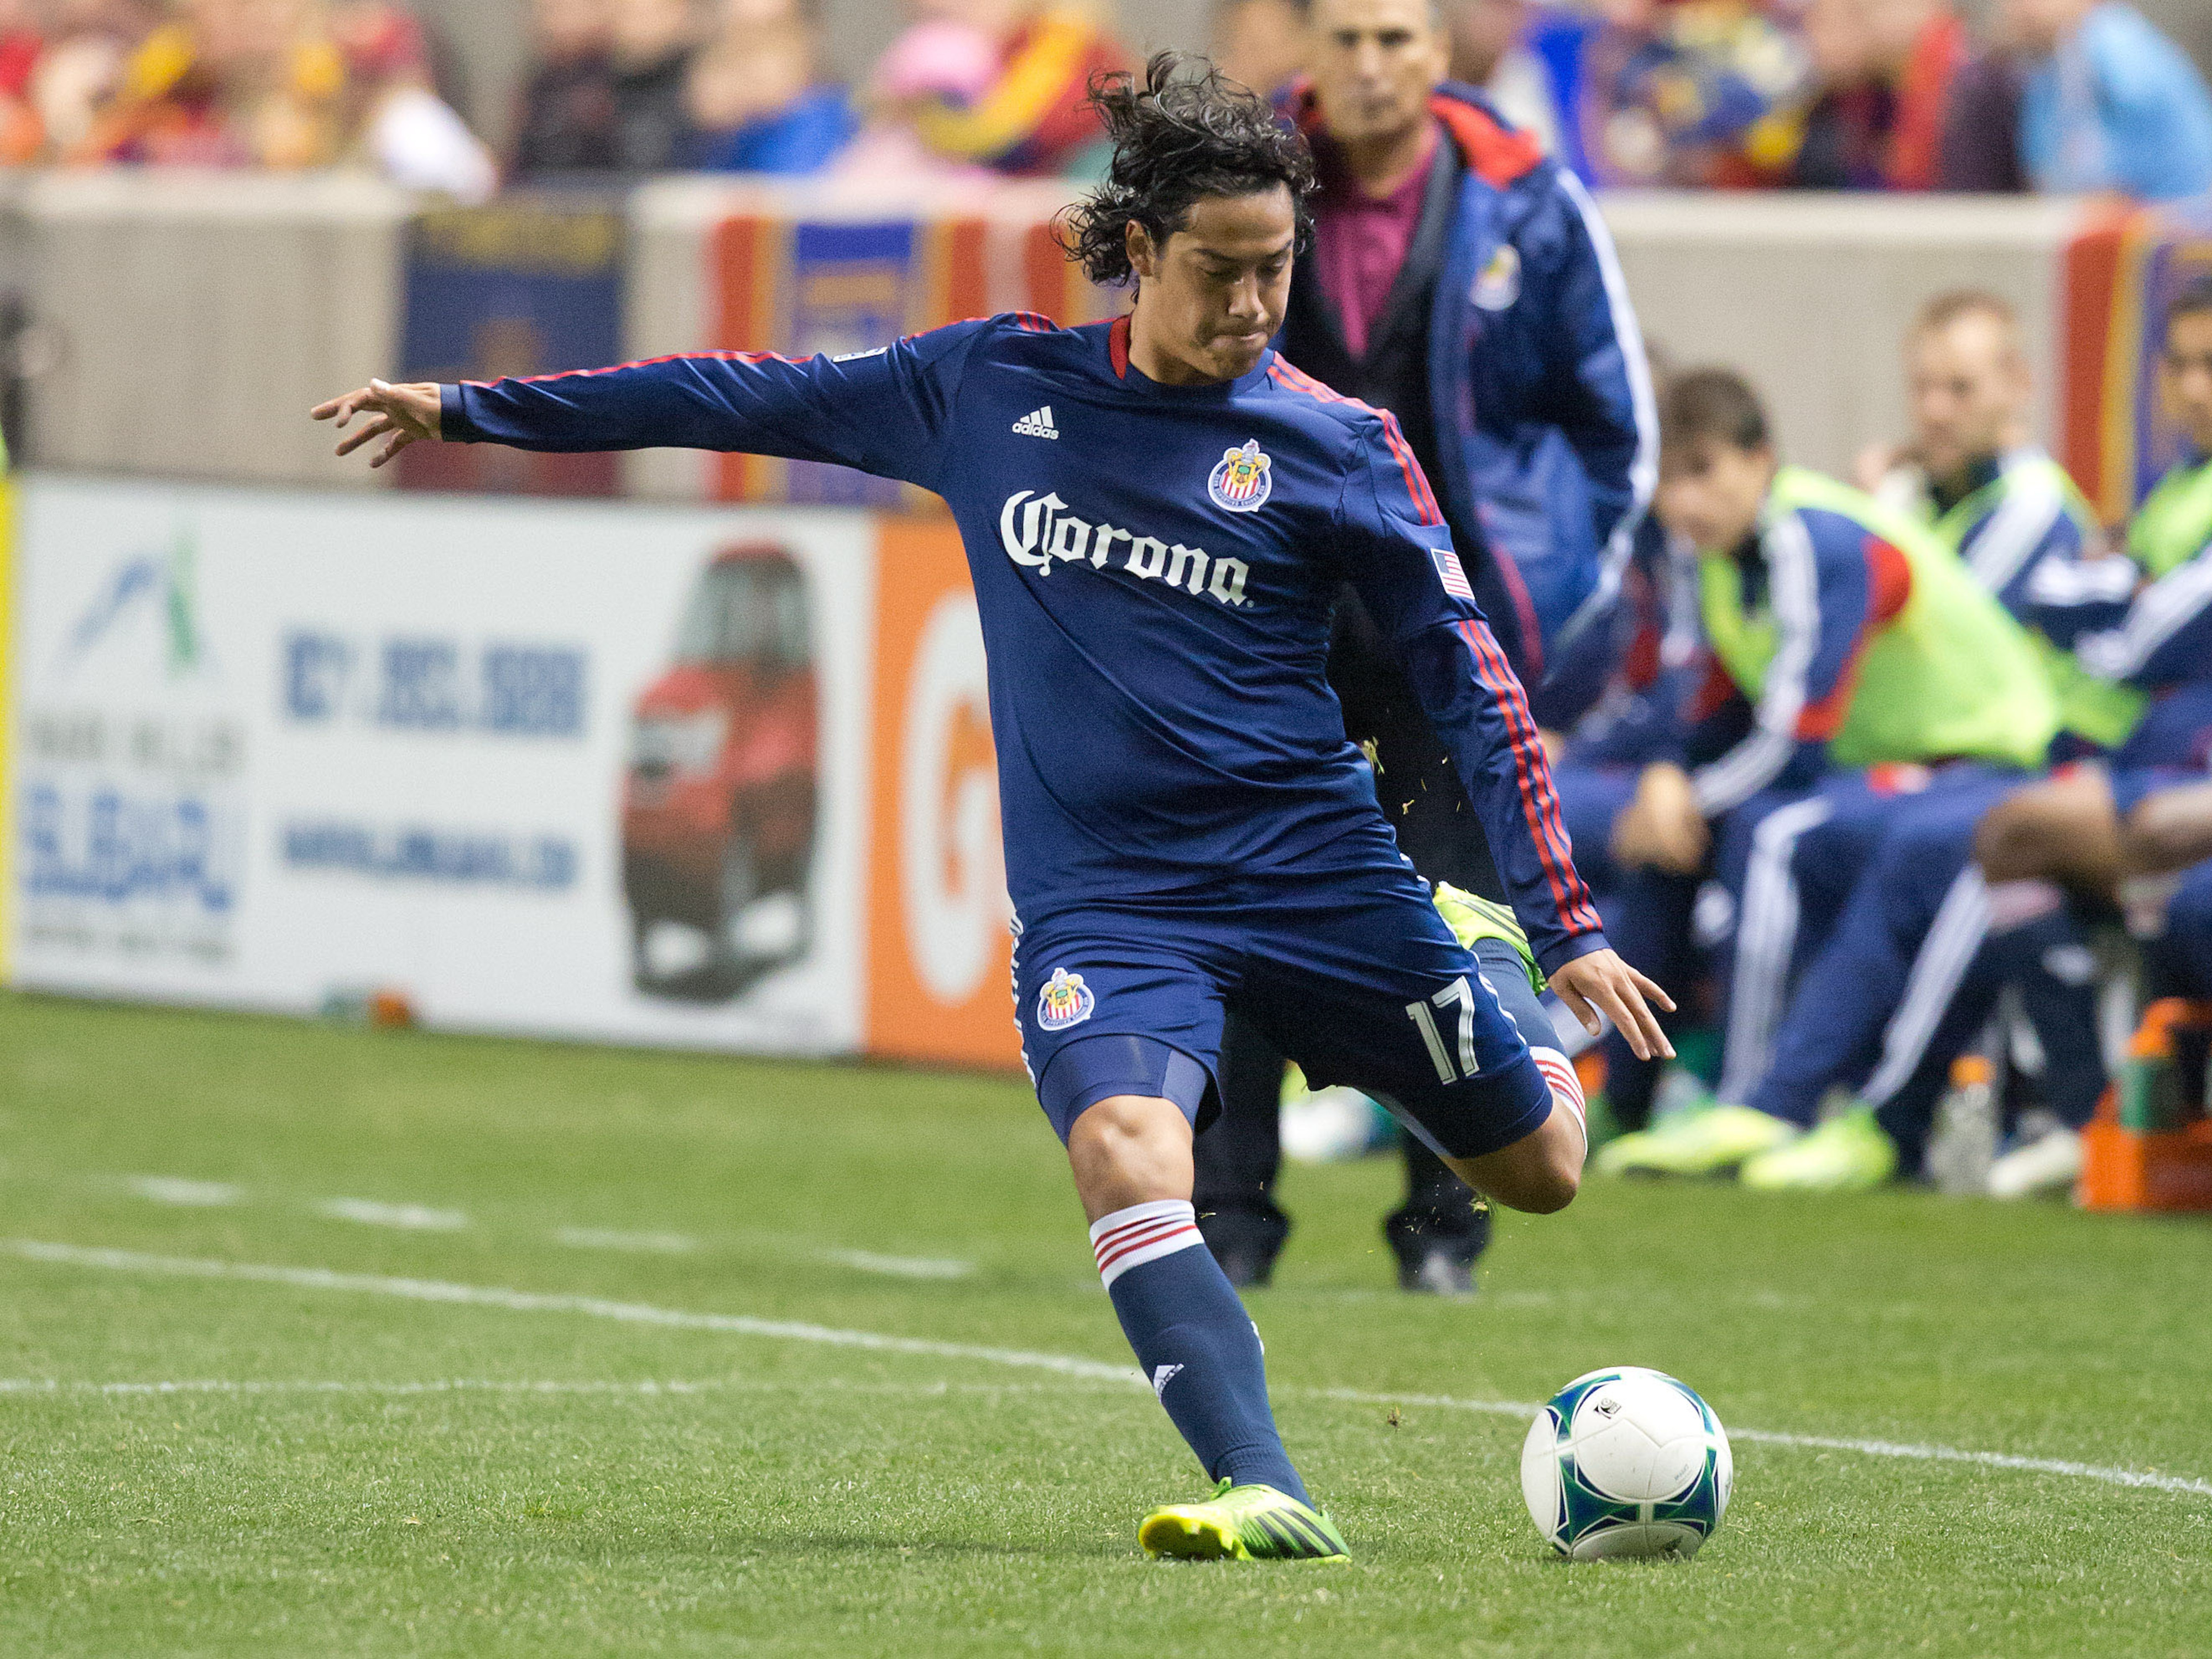 Frias: Made his pro debut with Chivas USA in 2013.